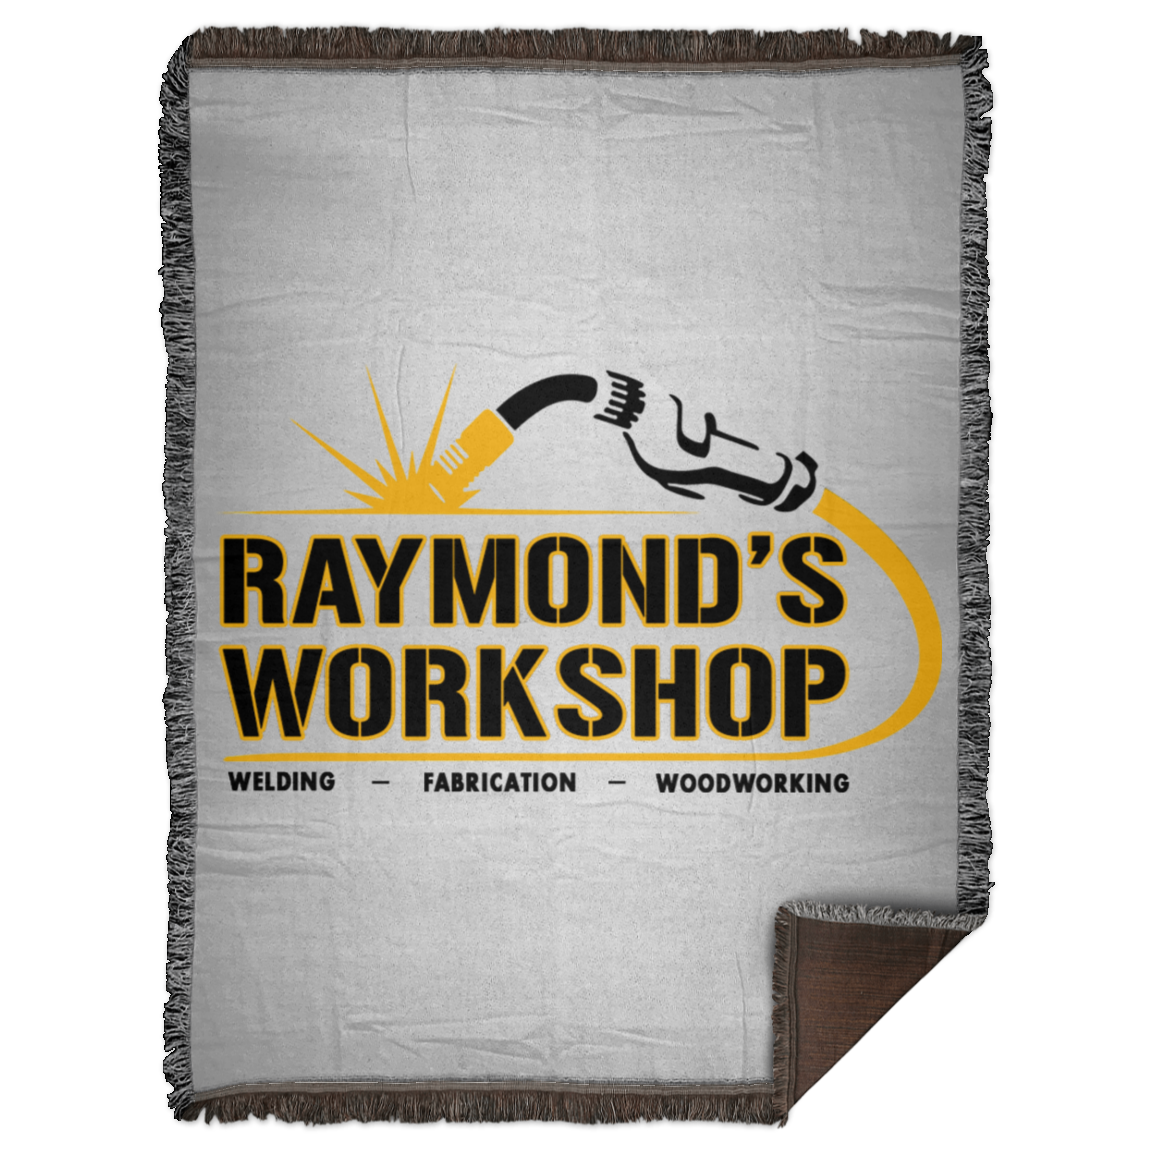 Raymond's Workshop Woven Blanket - 60x80